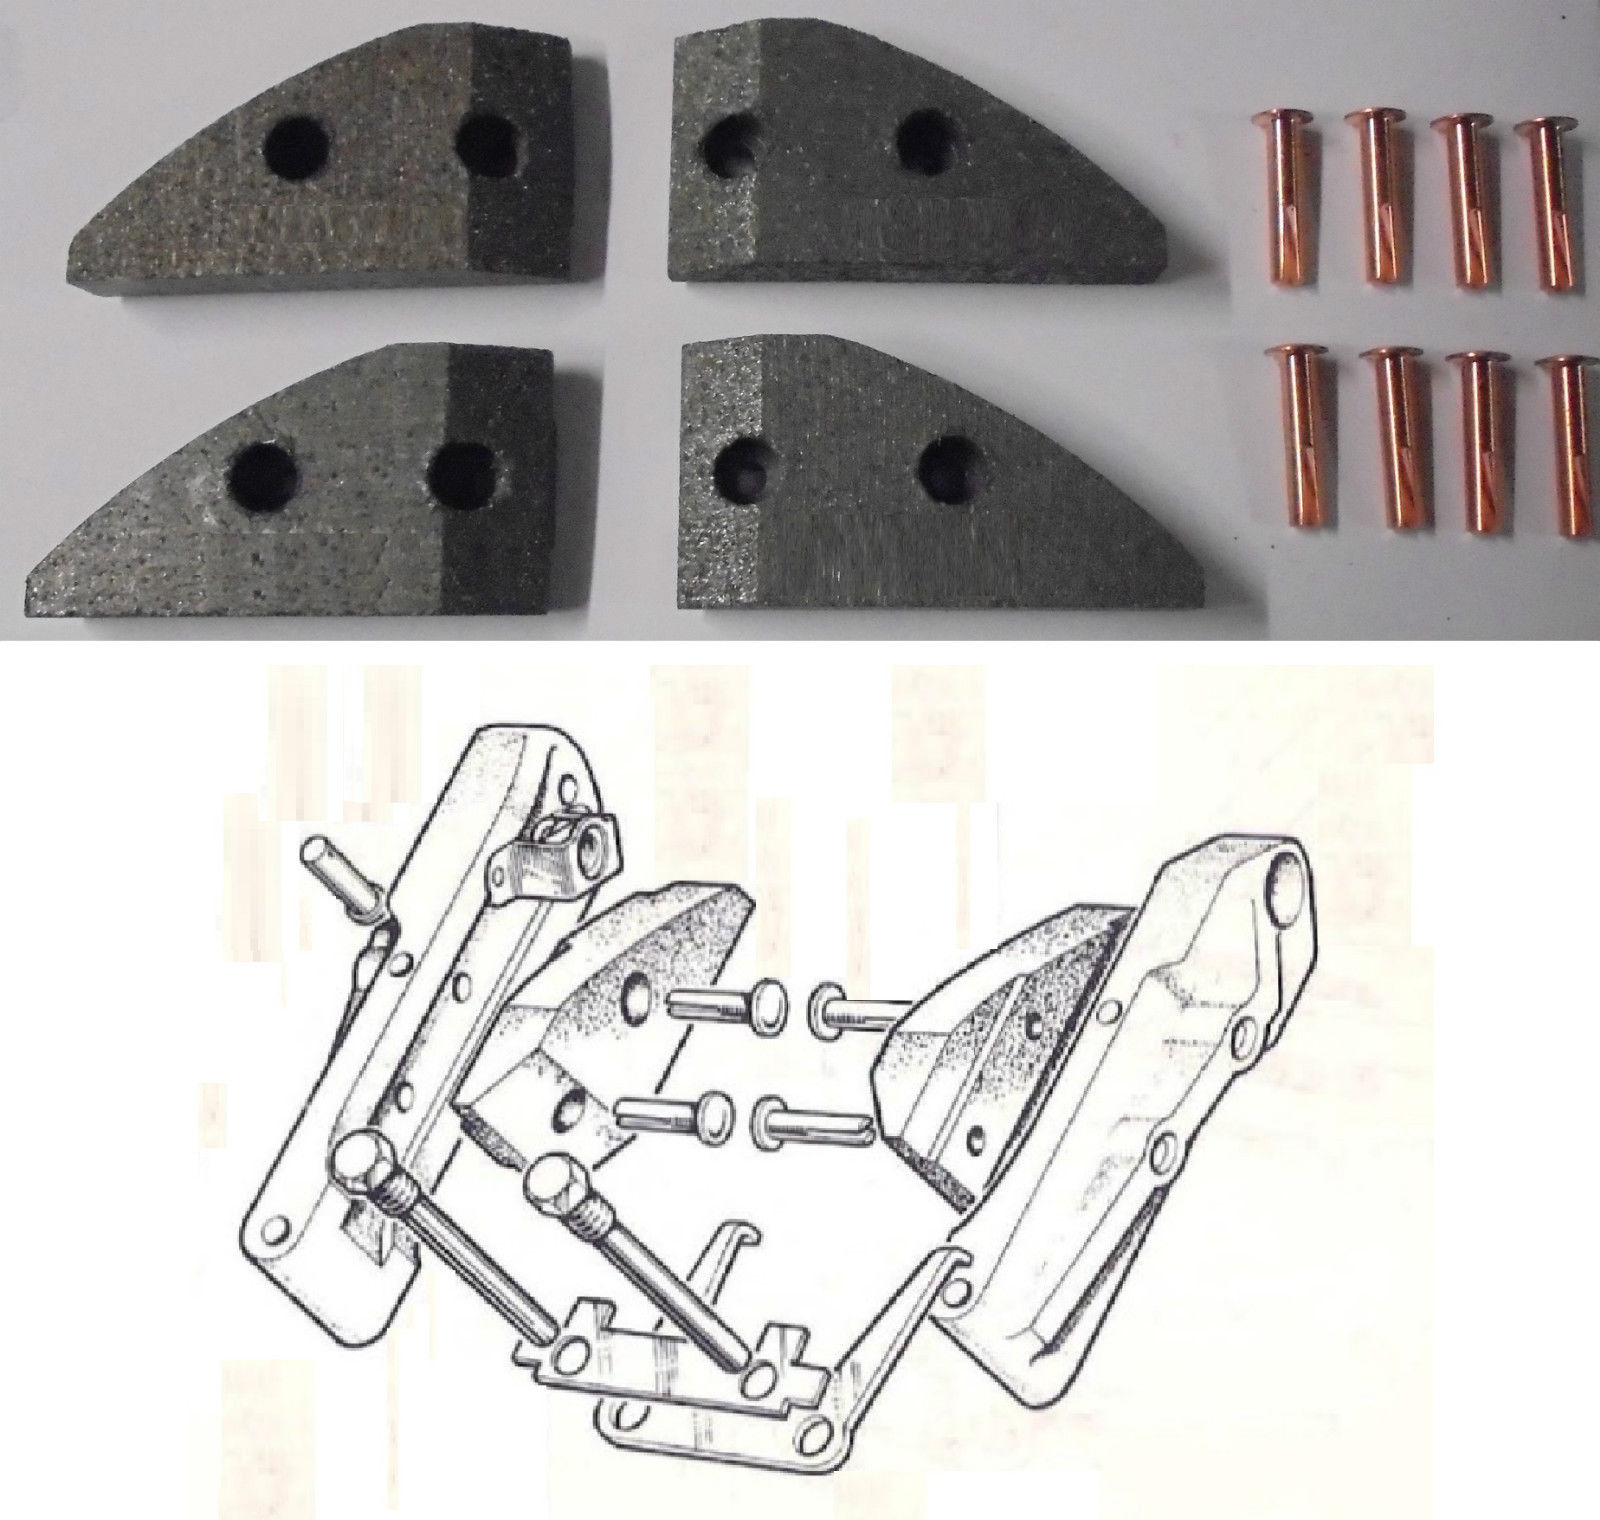 HANDBRAKE PADS (Jaguar Mk1 Saloon) (2.4 & 3.4) (** 1955- 59 Only **)